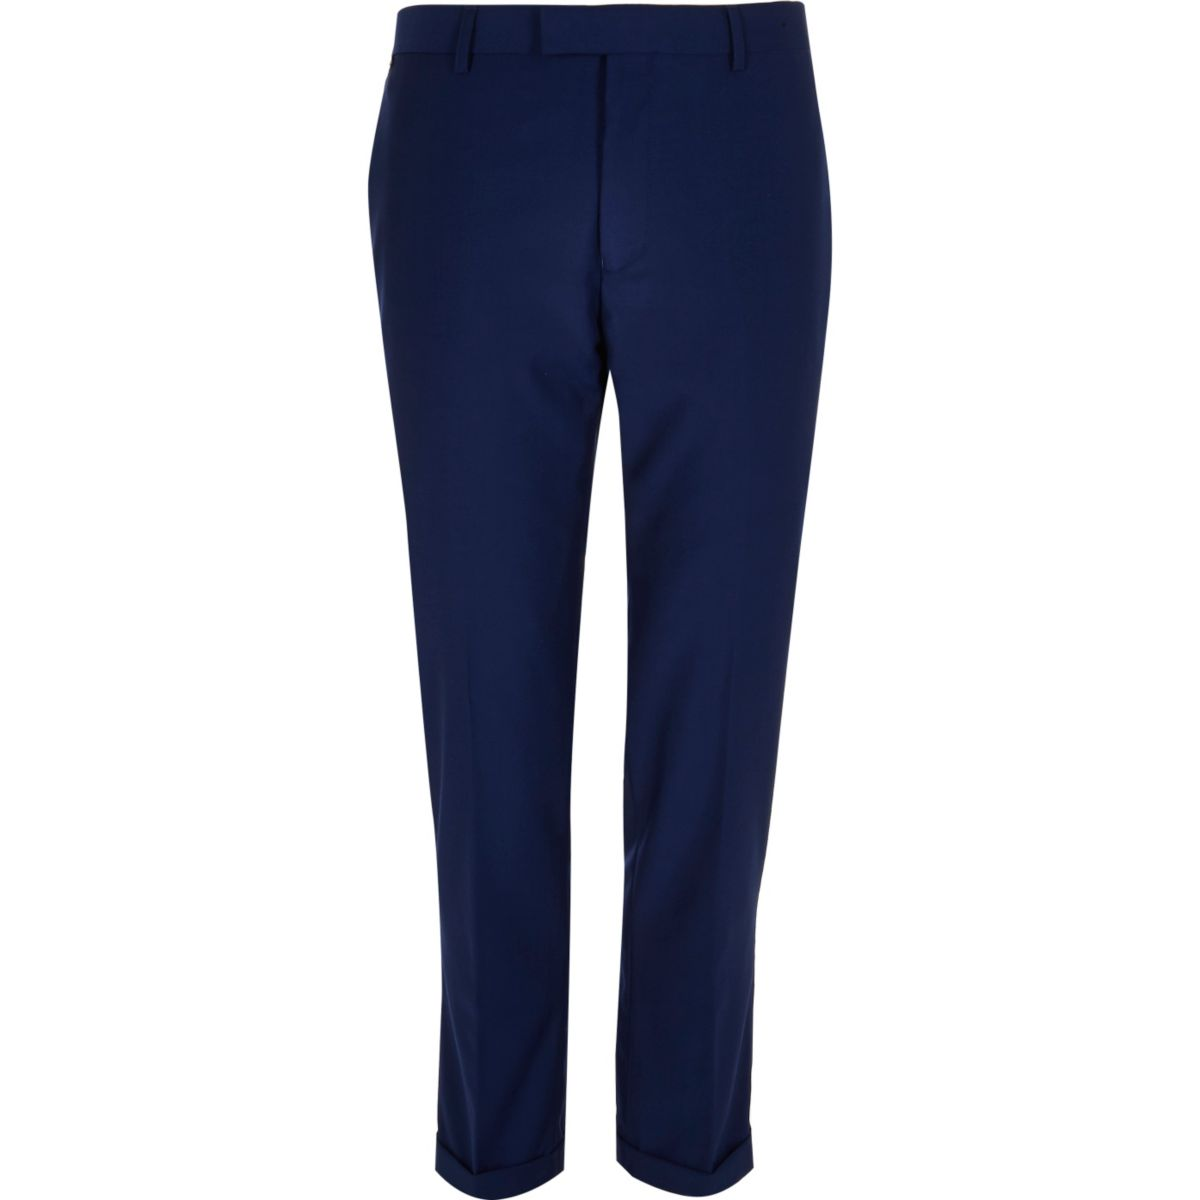 Bright blue slim cropped pants